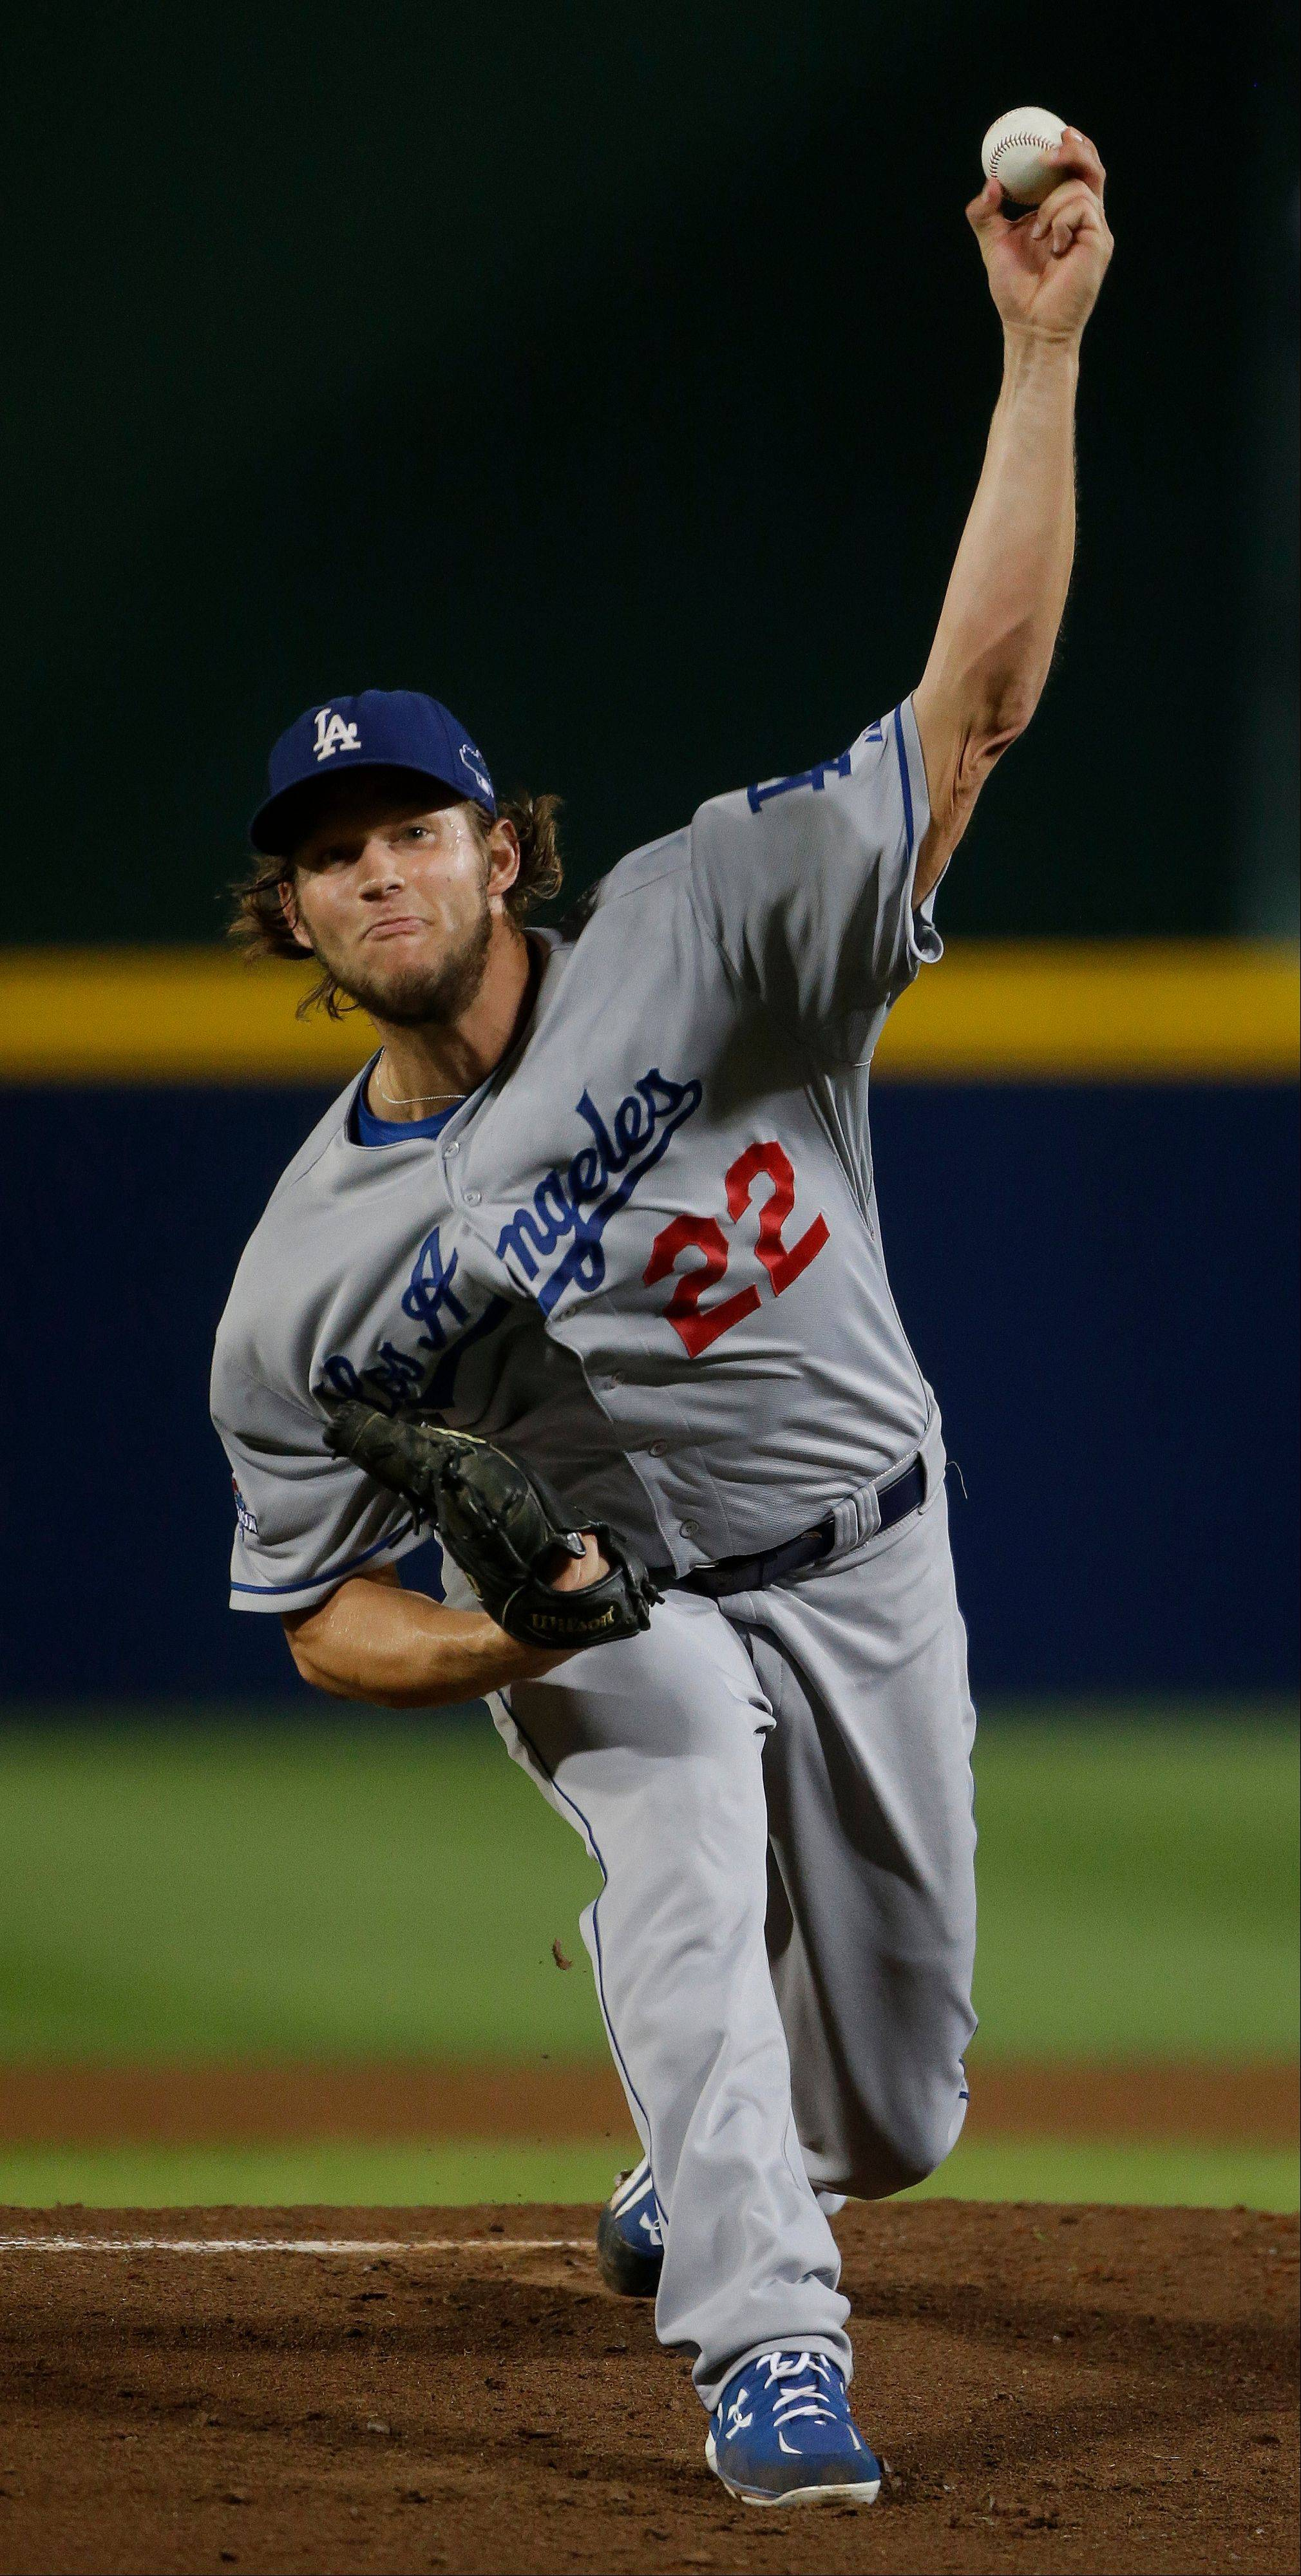 Dodgers starting pitcher Clayton Kershaw works against Braves in the first inning of Game 1 of the National League Divisional Series Thursday in Atlanta.